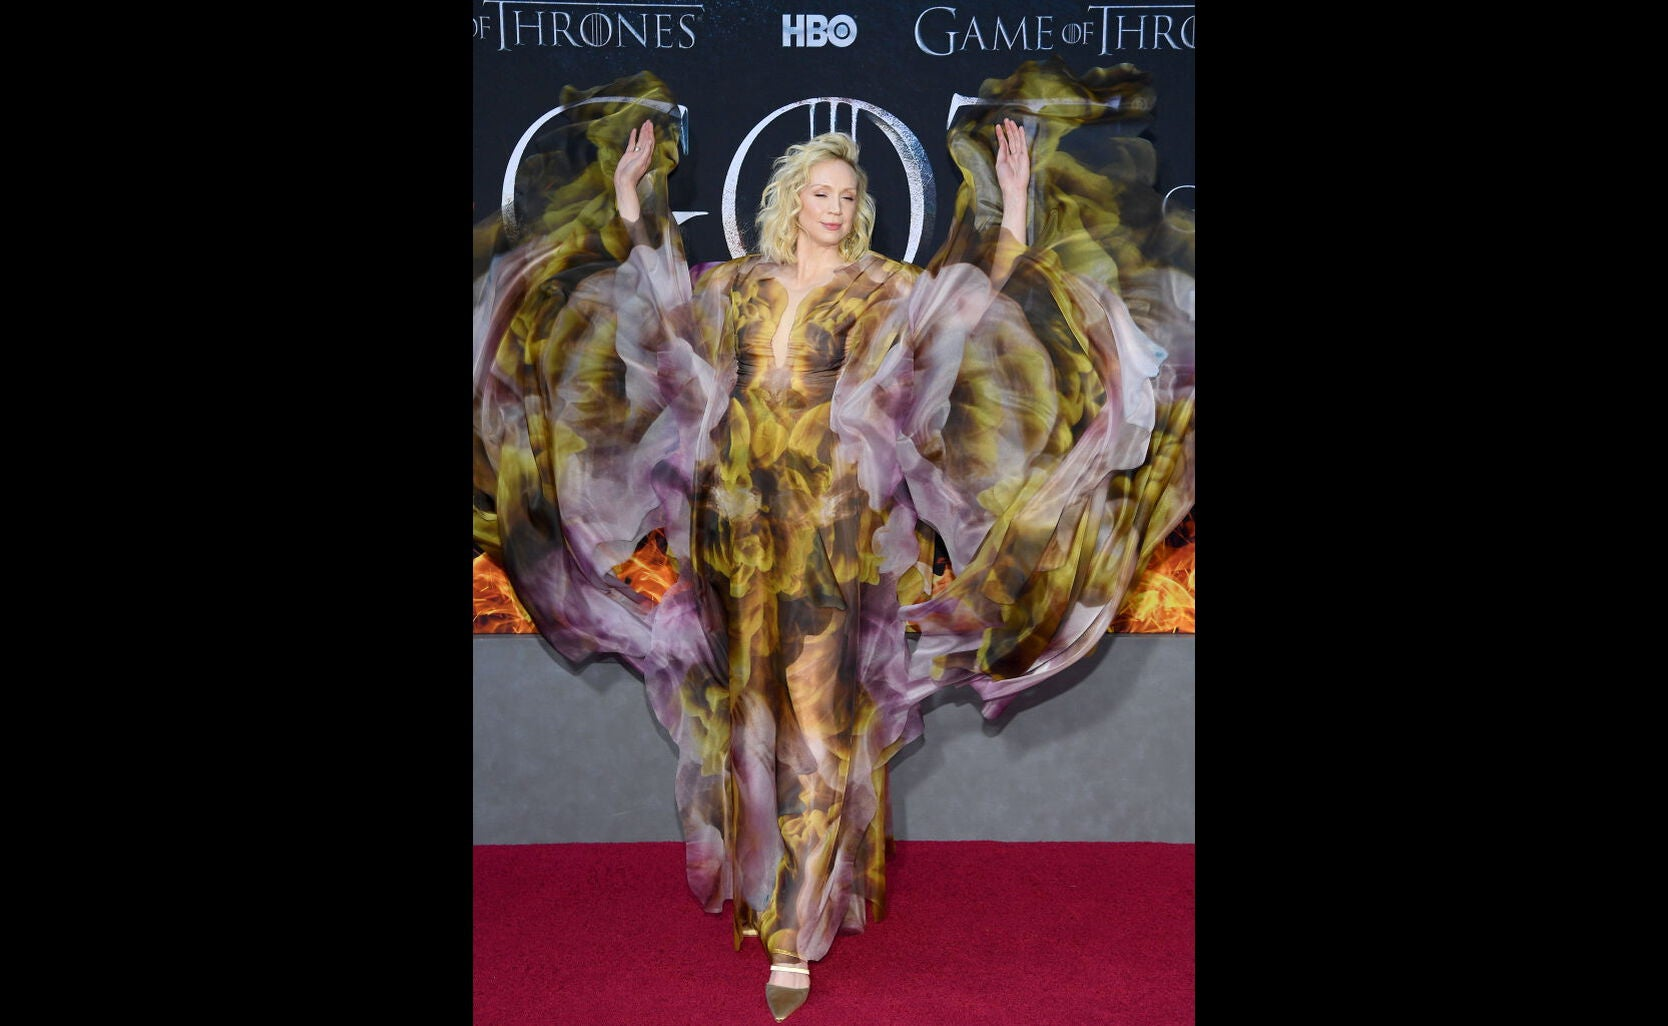 Gwedoline Christie at the premiere of Game of Thrones s8, 2019